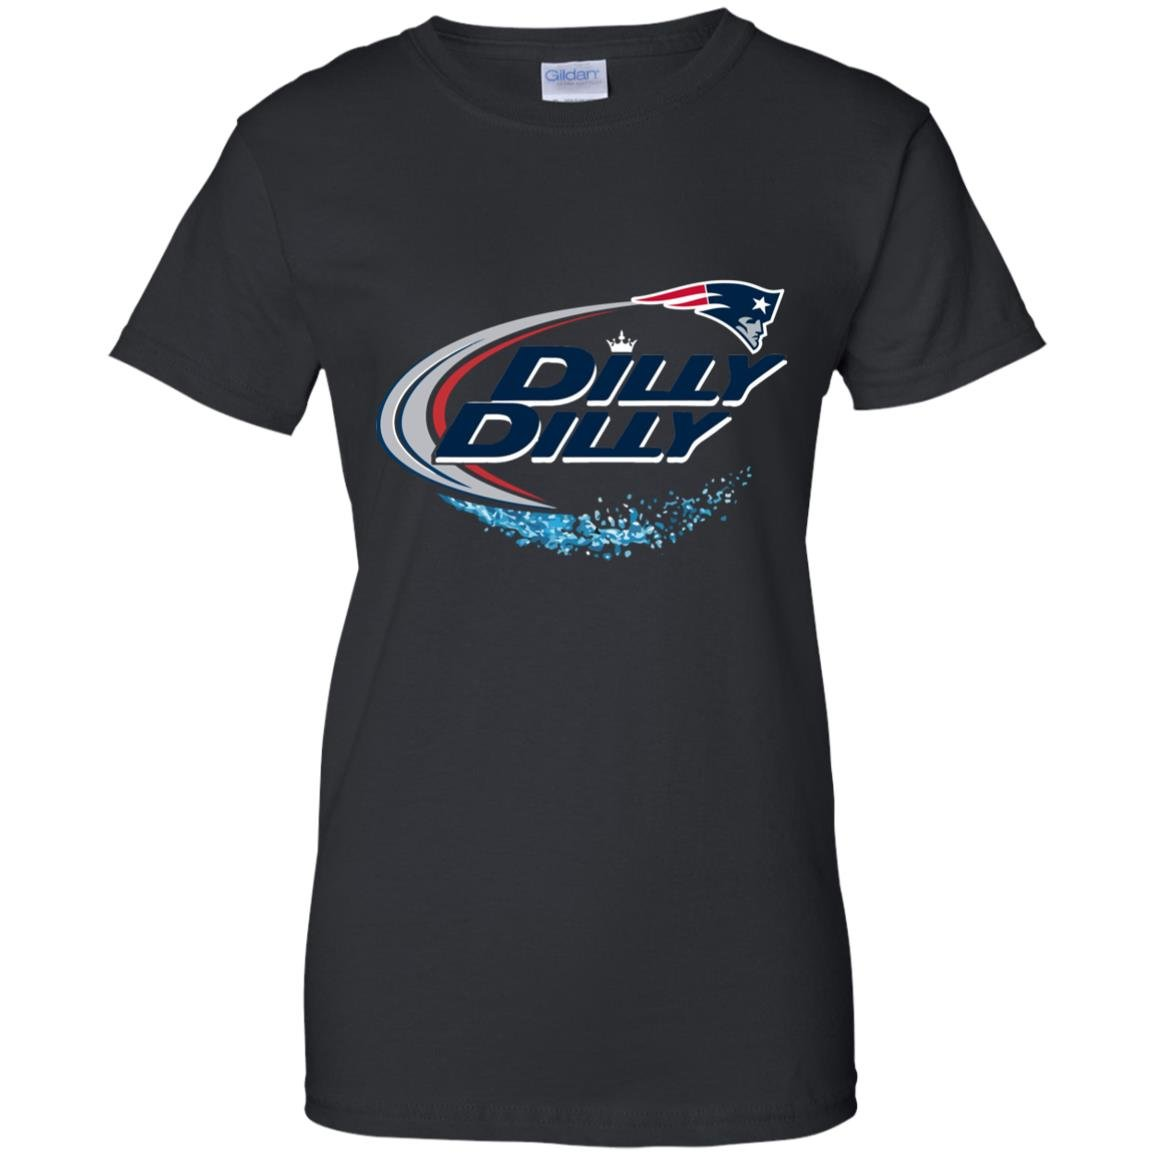 image 1563 - New England Patriots Dilly Dilly  shirt, sweatshirt, hoodie